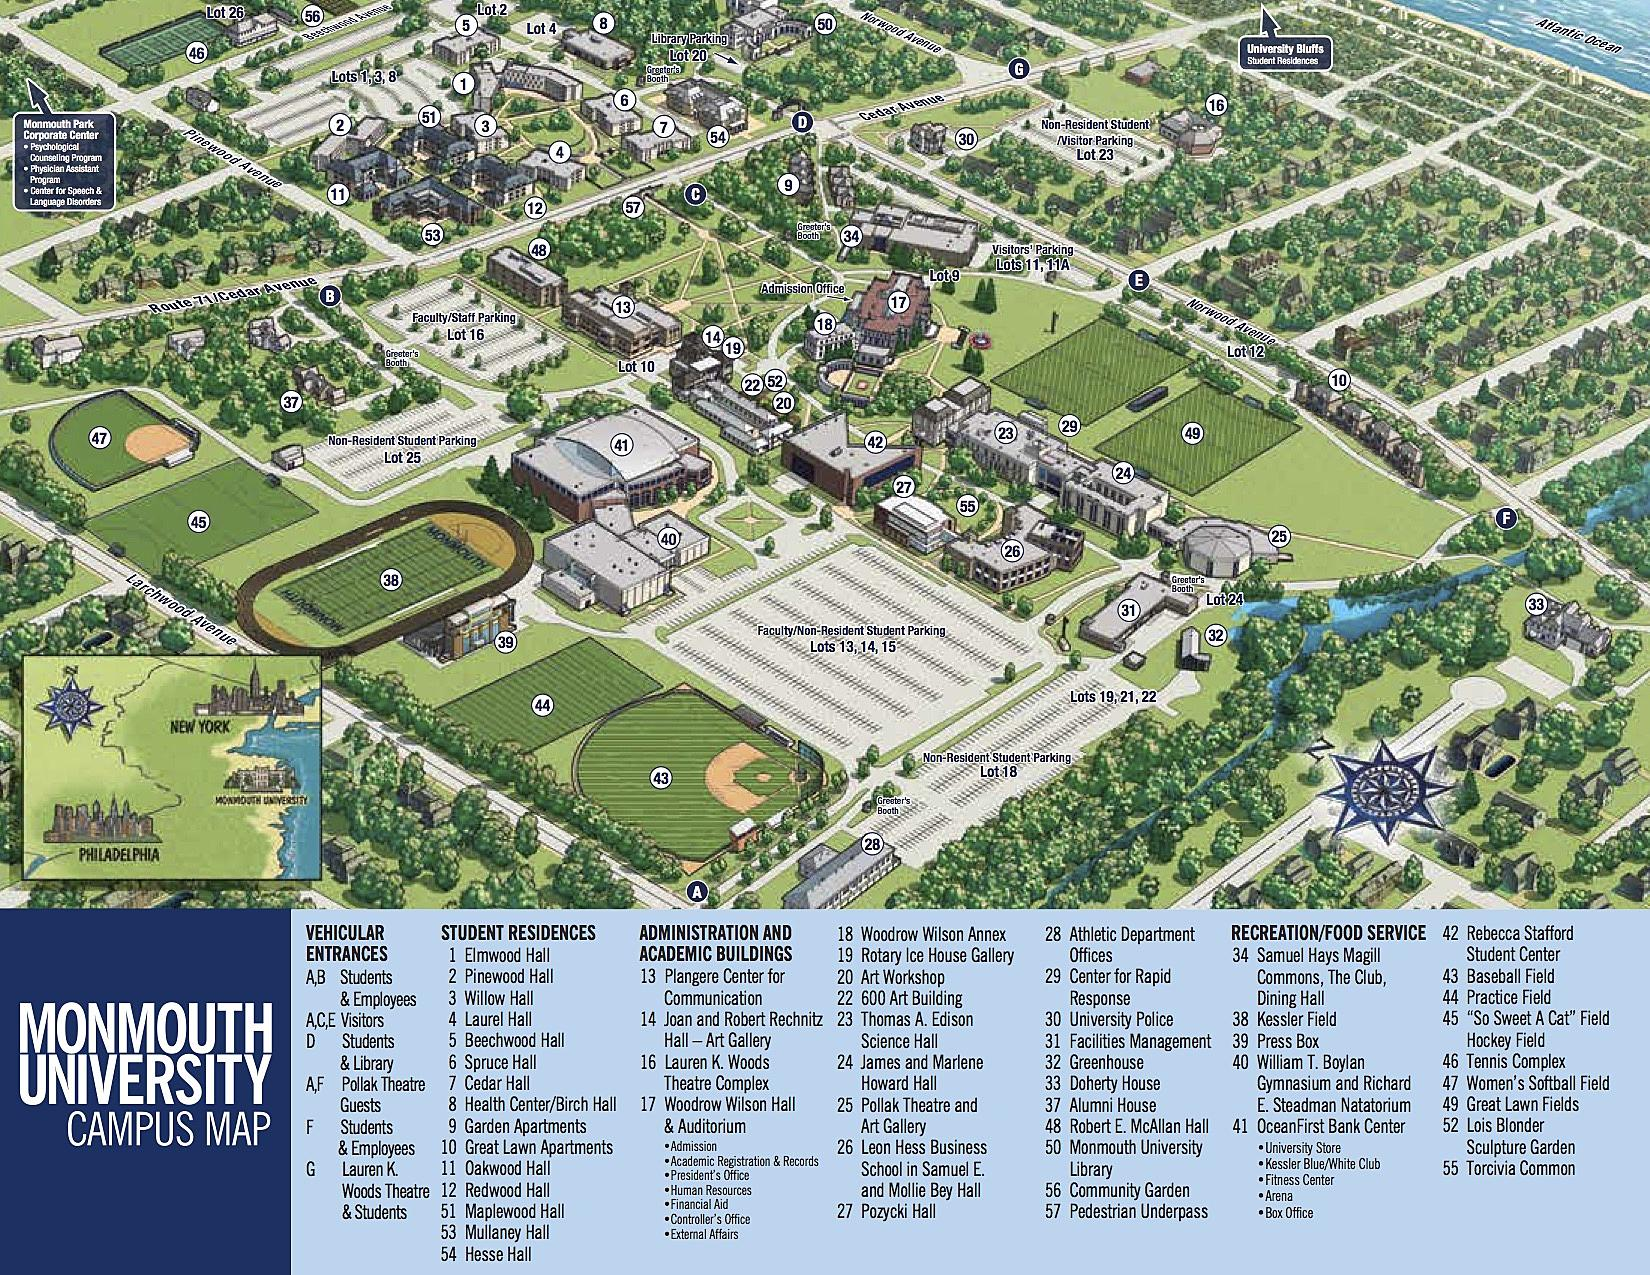 Monmouth University Map Monmouth University Map | Color 2018